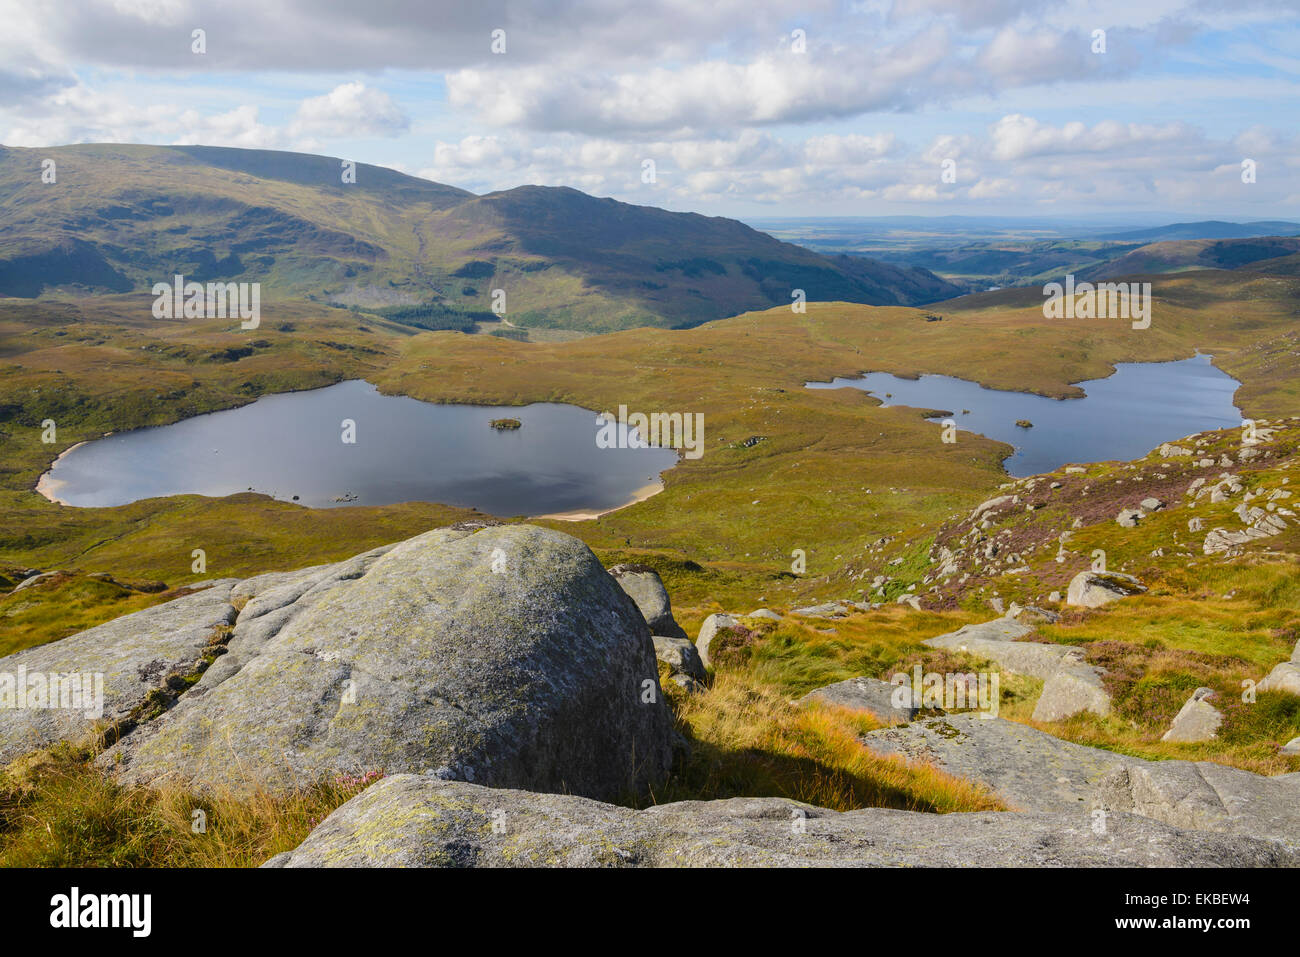 View over the Glenhead Lochs from Rig of the Jarkness, Galloway Hills, Dumfries and Galloway, Scotland, United Kingdom, - Stock Image